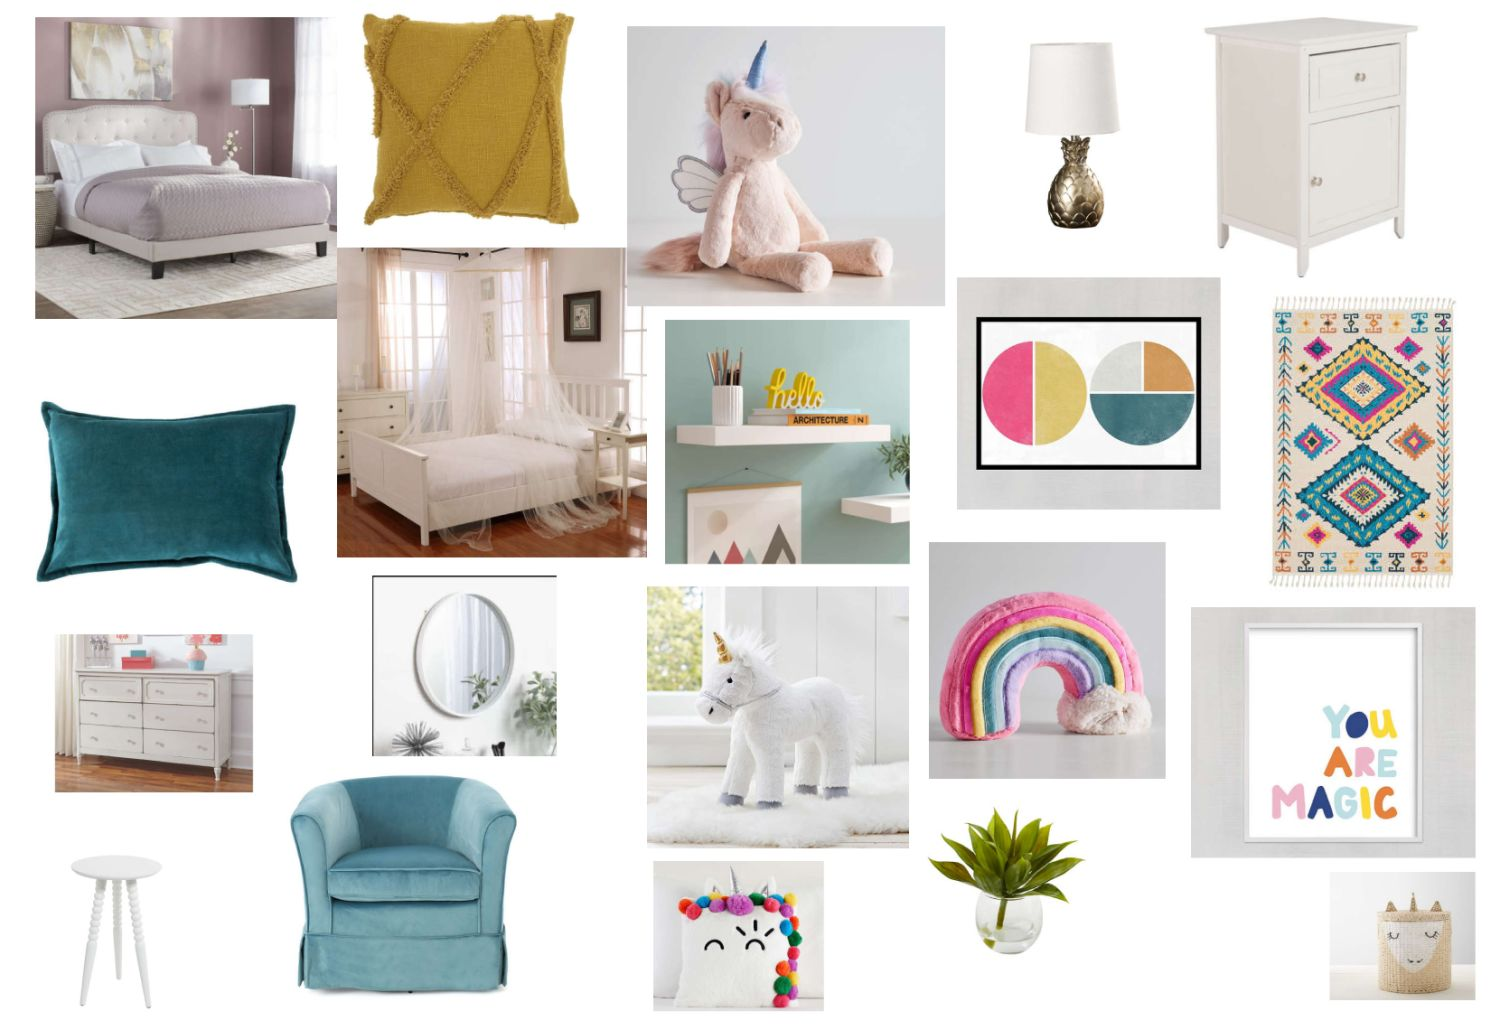 Kid's Bedroom Layout Created For Beltus Ikechi